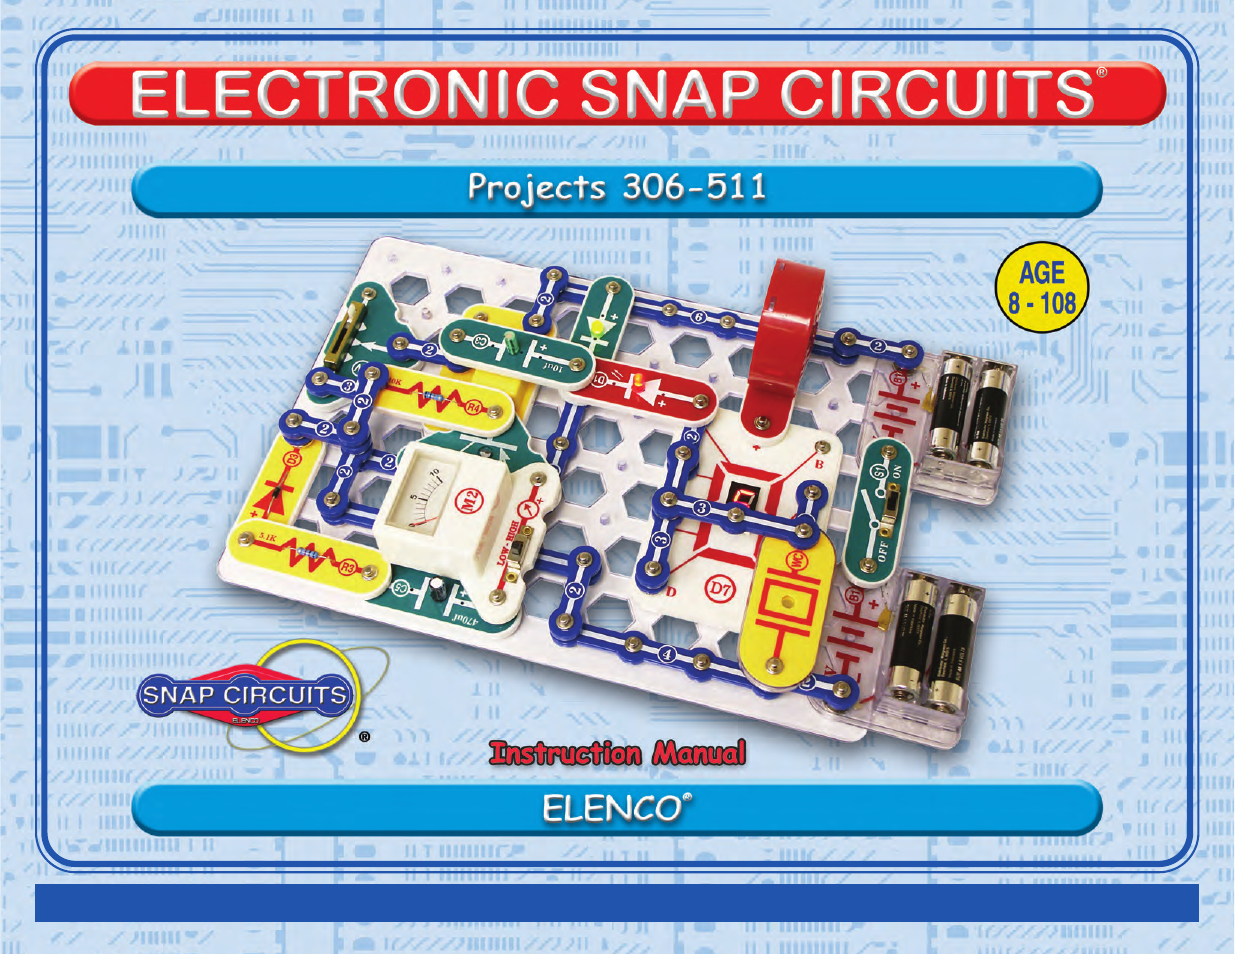 Elenco Projects 306-511 User Manual | 64 pages | Also for: Snap Circuits  Pro® 500 Experiments, Snap Circuits Pro® Educational 500 Exp., Snap  ...